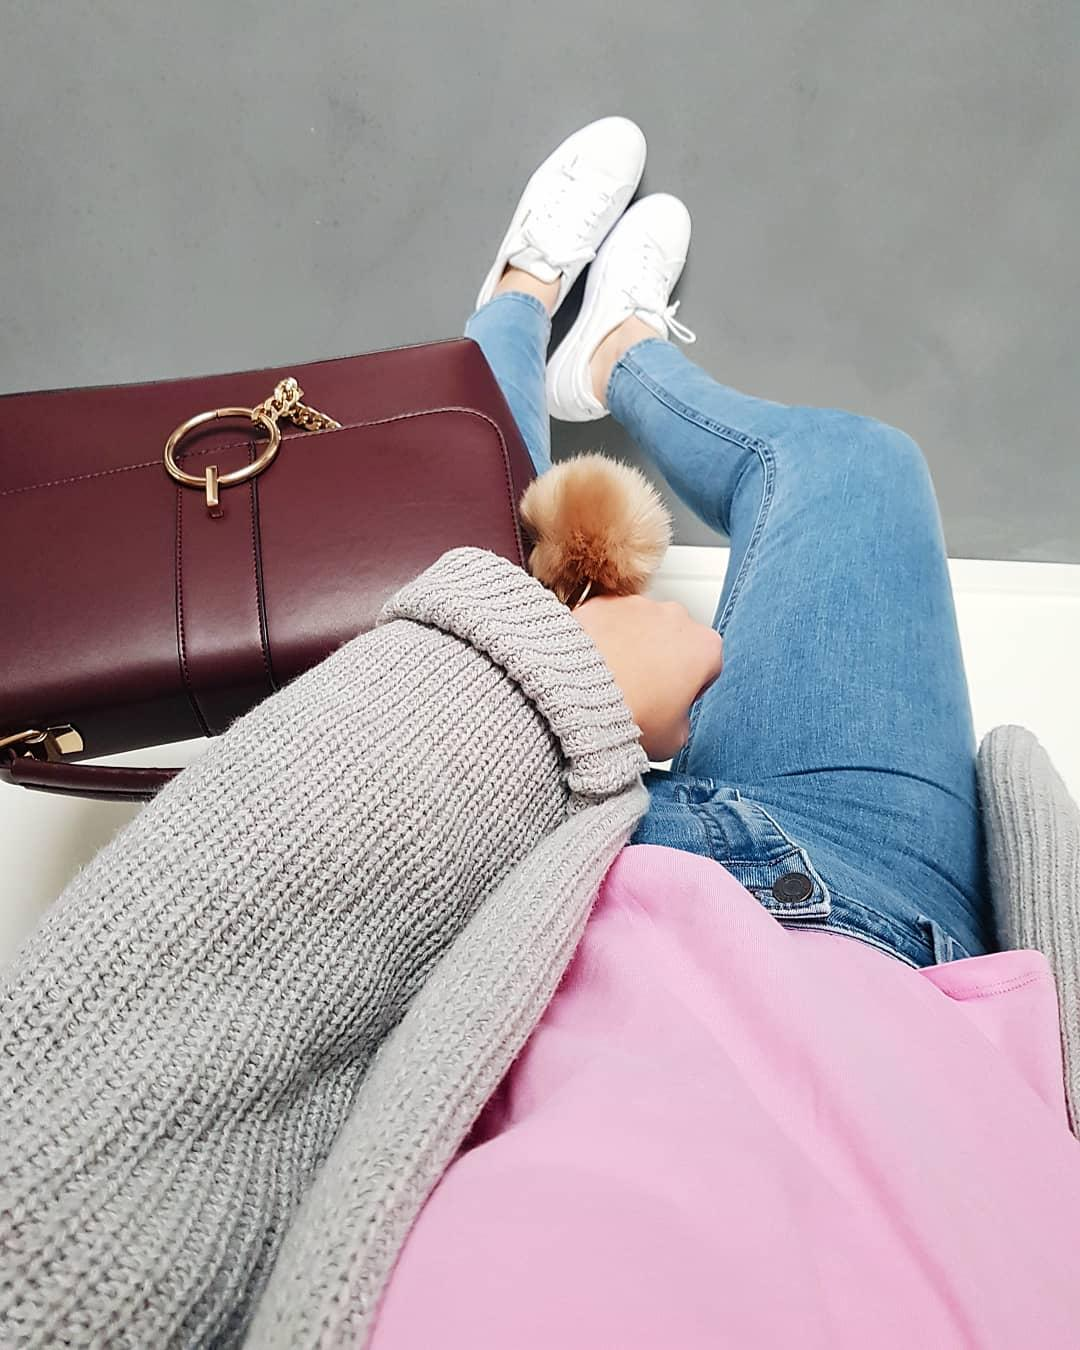 Weekendvibes 💗 #ootd #couchcommunity #couchstyle #neuhier